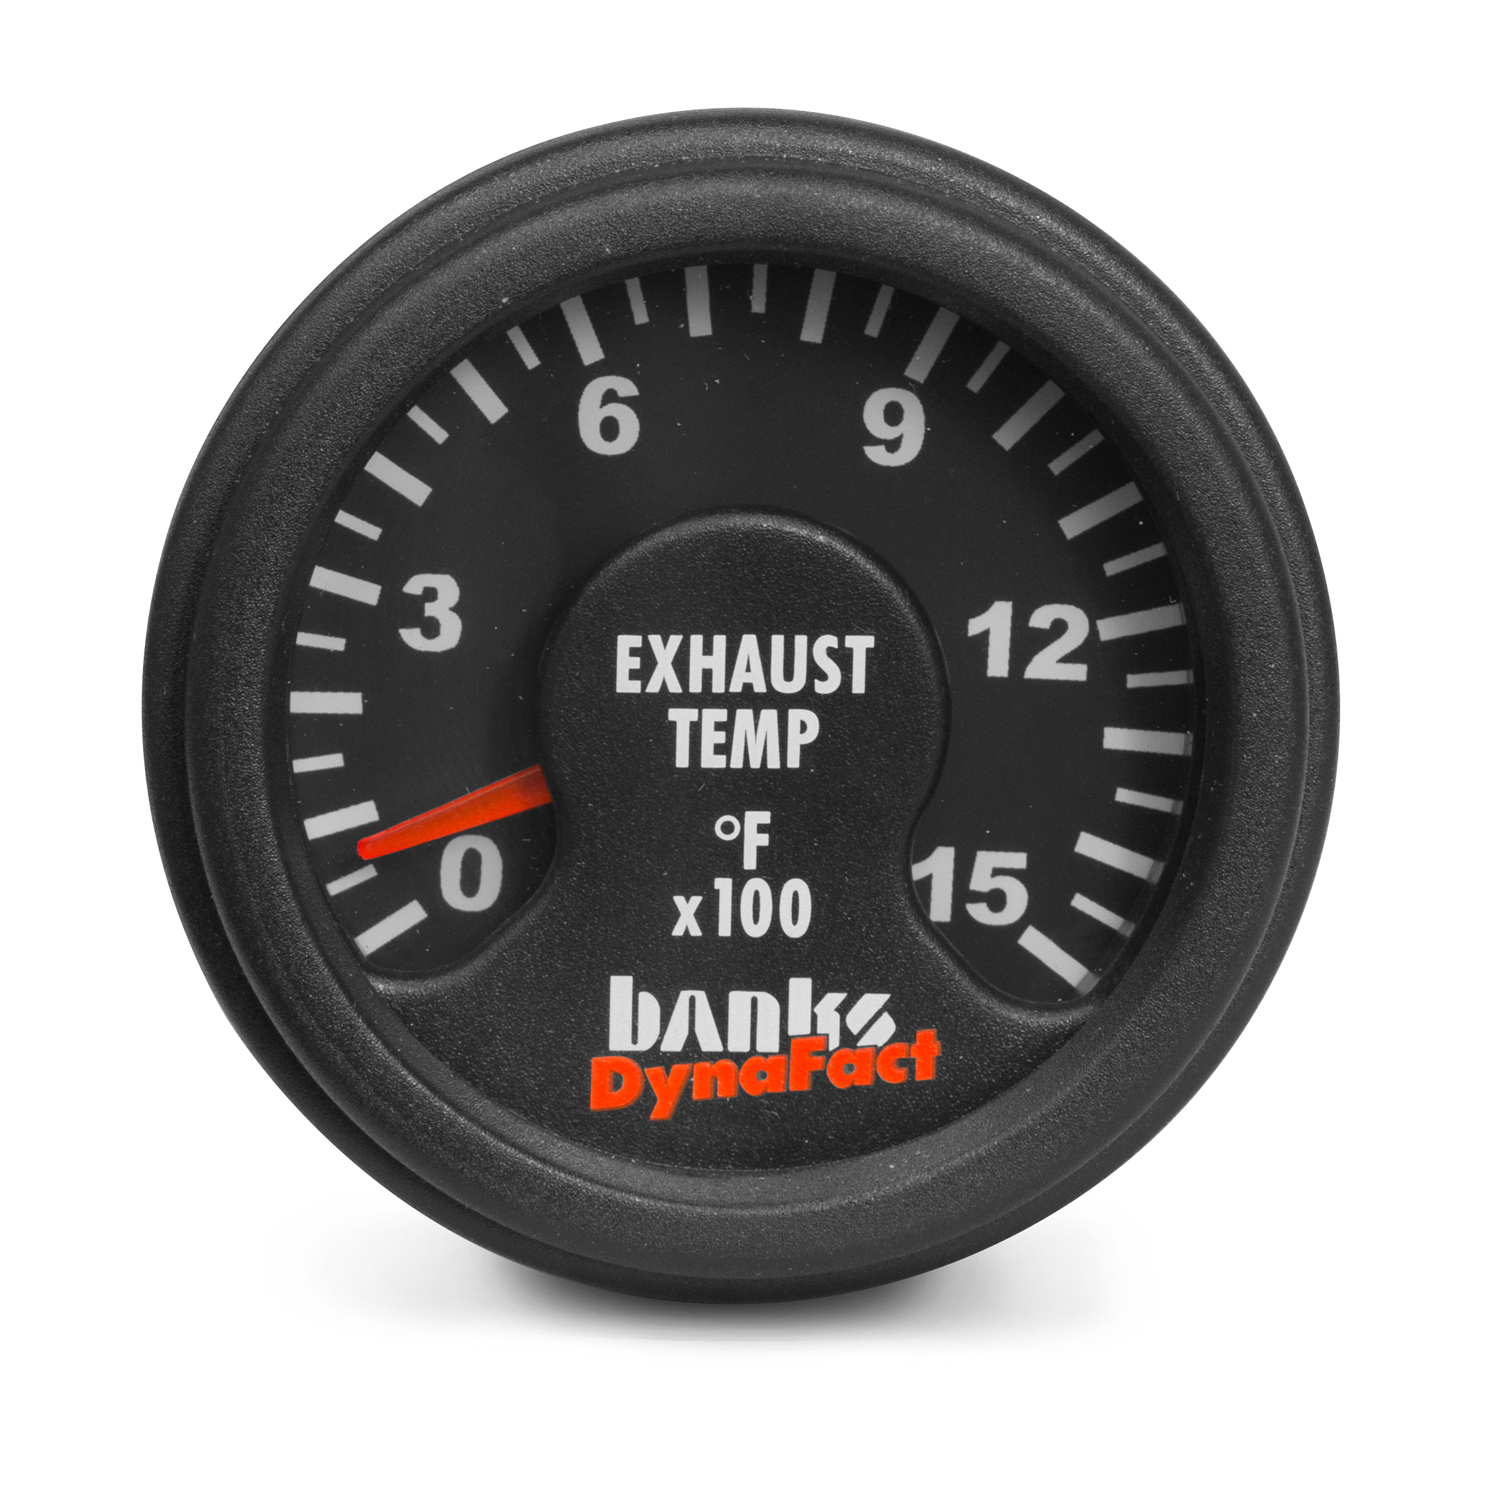 Banks 64008 - Banks DynaFact Gauges